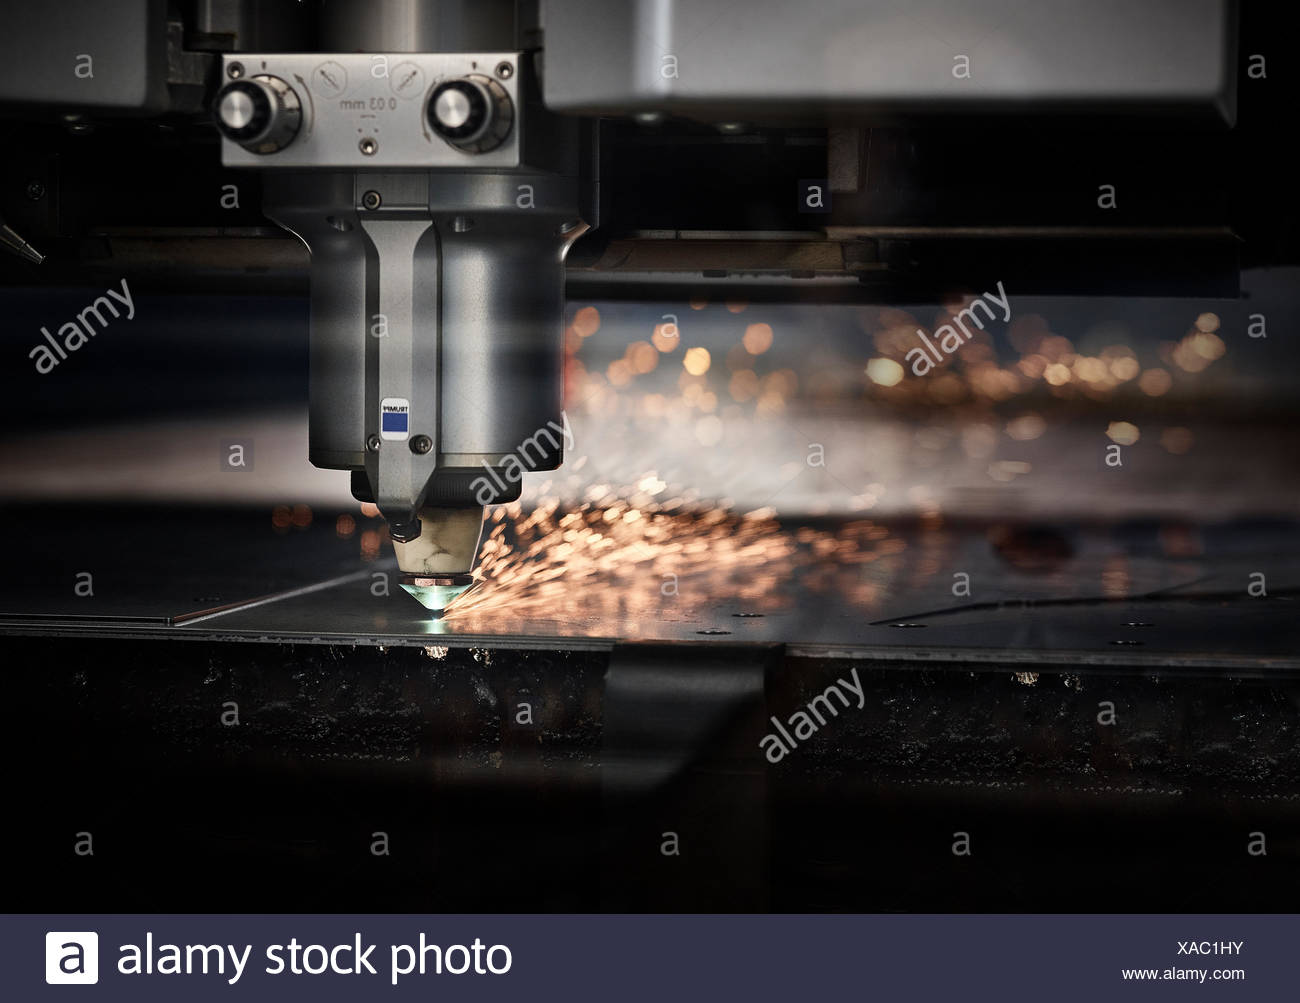 Laser cutter machine with sparks - Stock Image